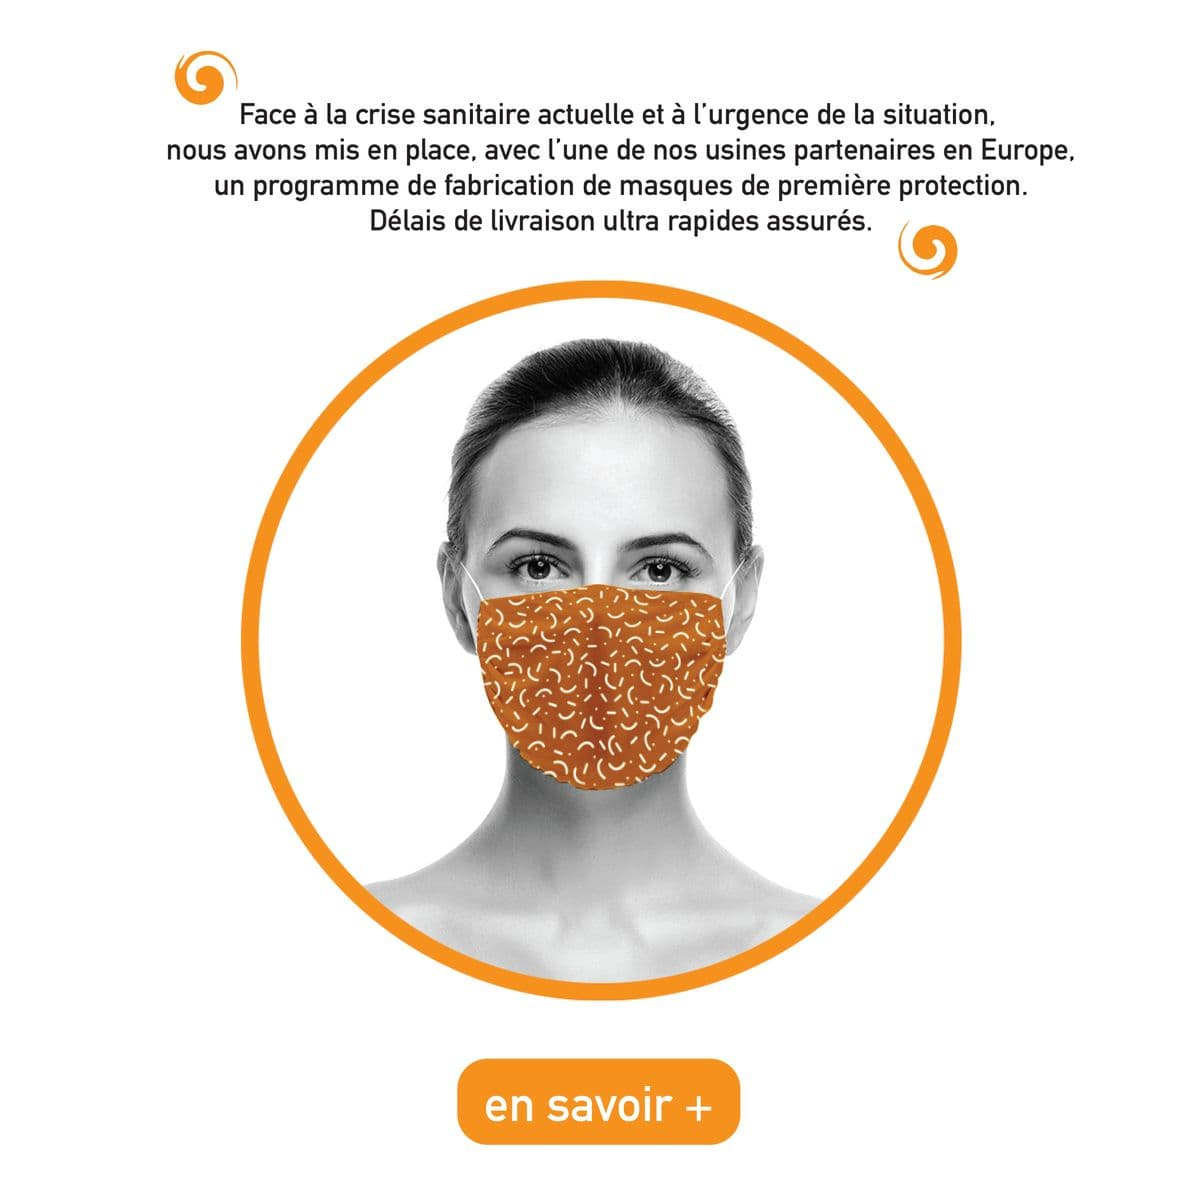 Masques de protection Coronavirus